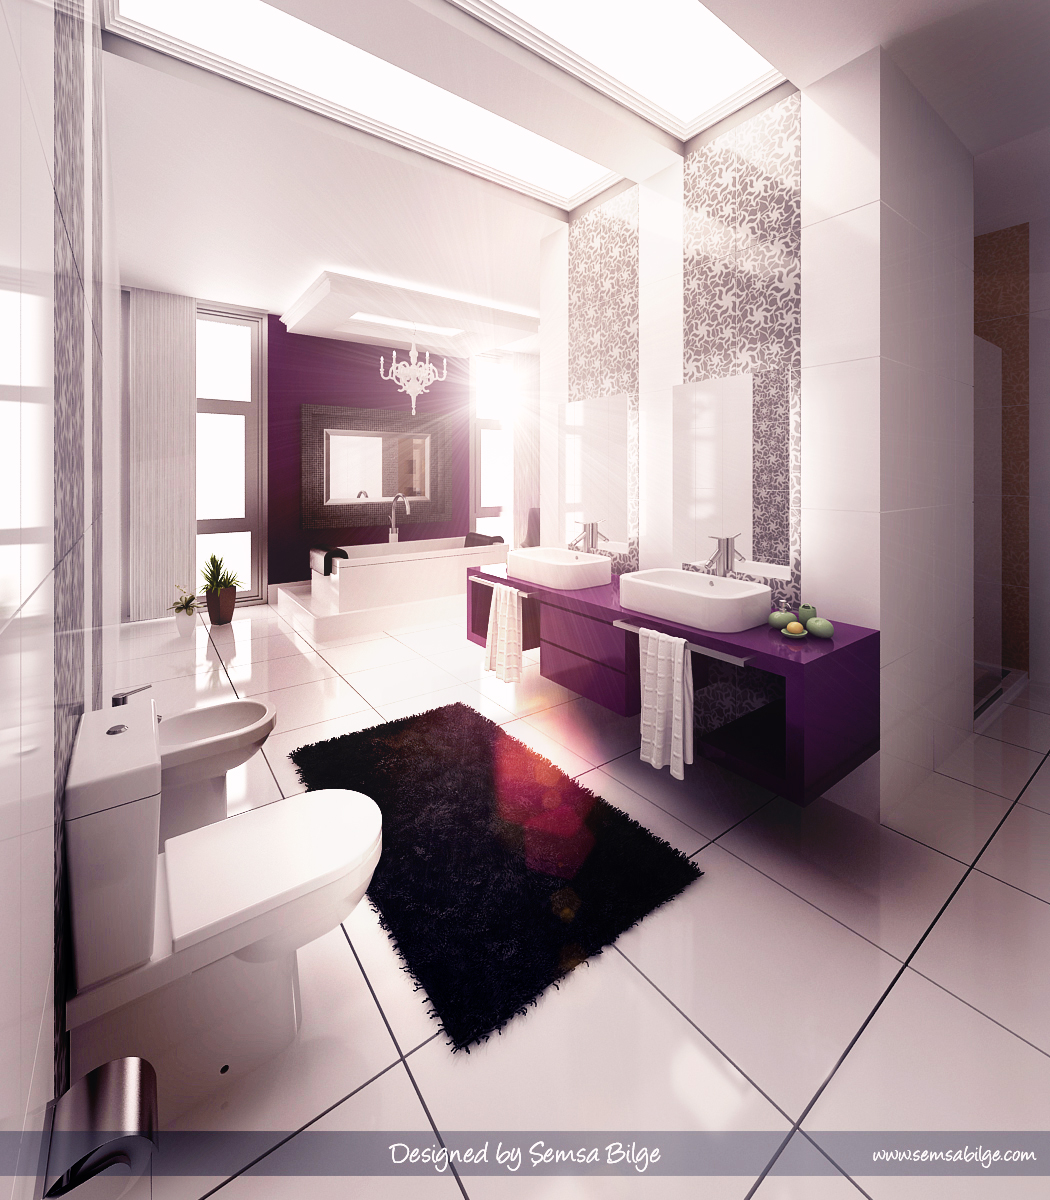 Inspiring bathroom designs for the soul for Beautiful bathroom decor